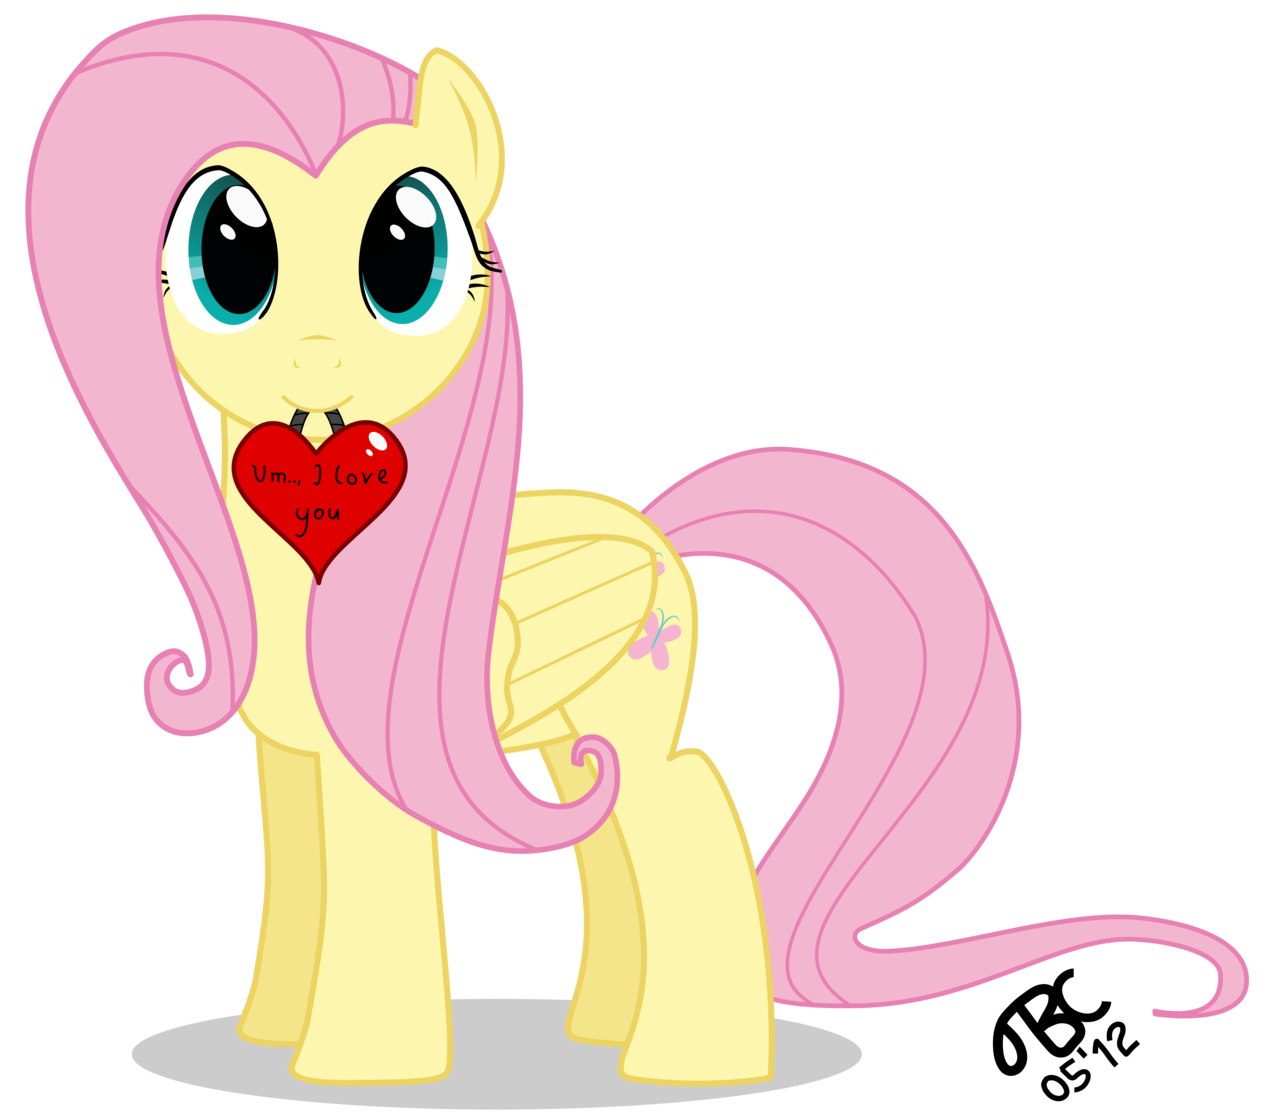 I almost forgot a very important question! Do YOU like Fluttershy?